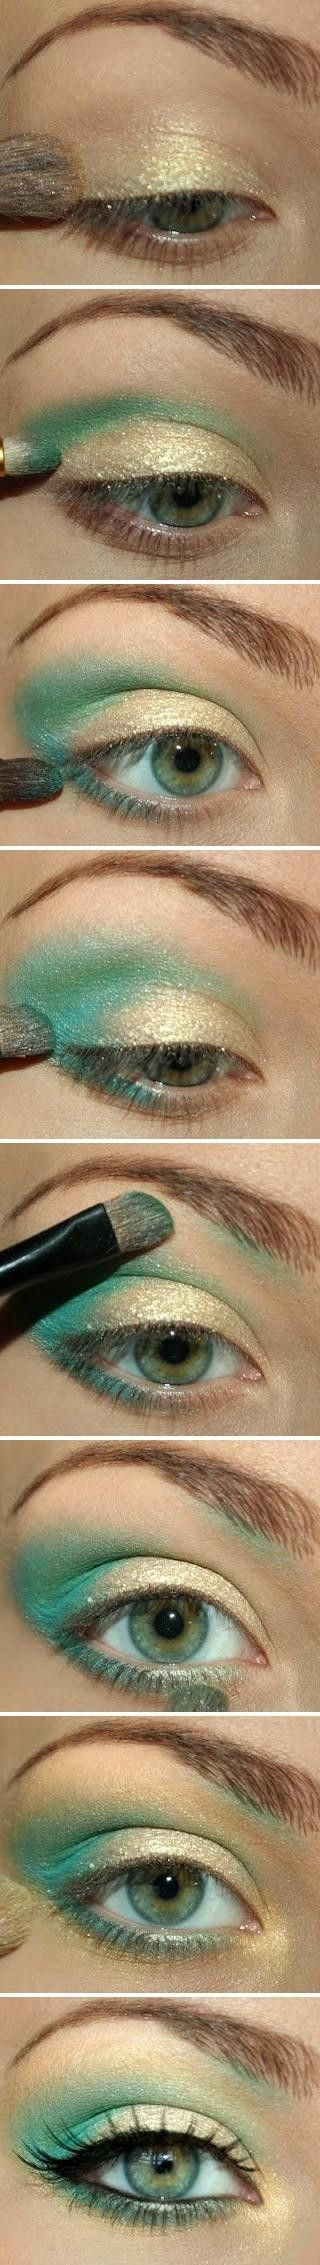 Love it!Green Eyeshadow, Mermaid Makeup, Day Makeup, Eye Makeup, Eye Color, Mermaid Eye, Eyeshadows, Eyemakeup, Gold Eye